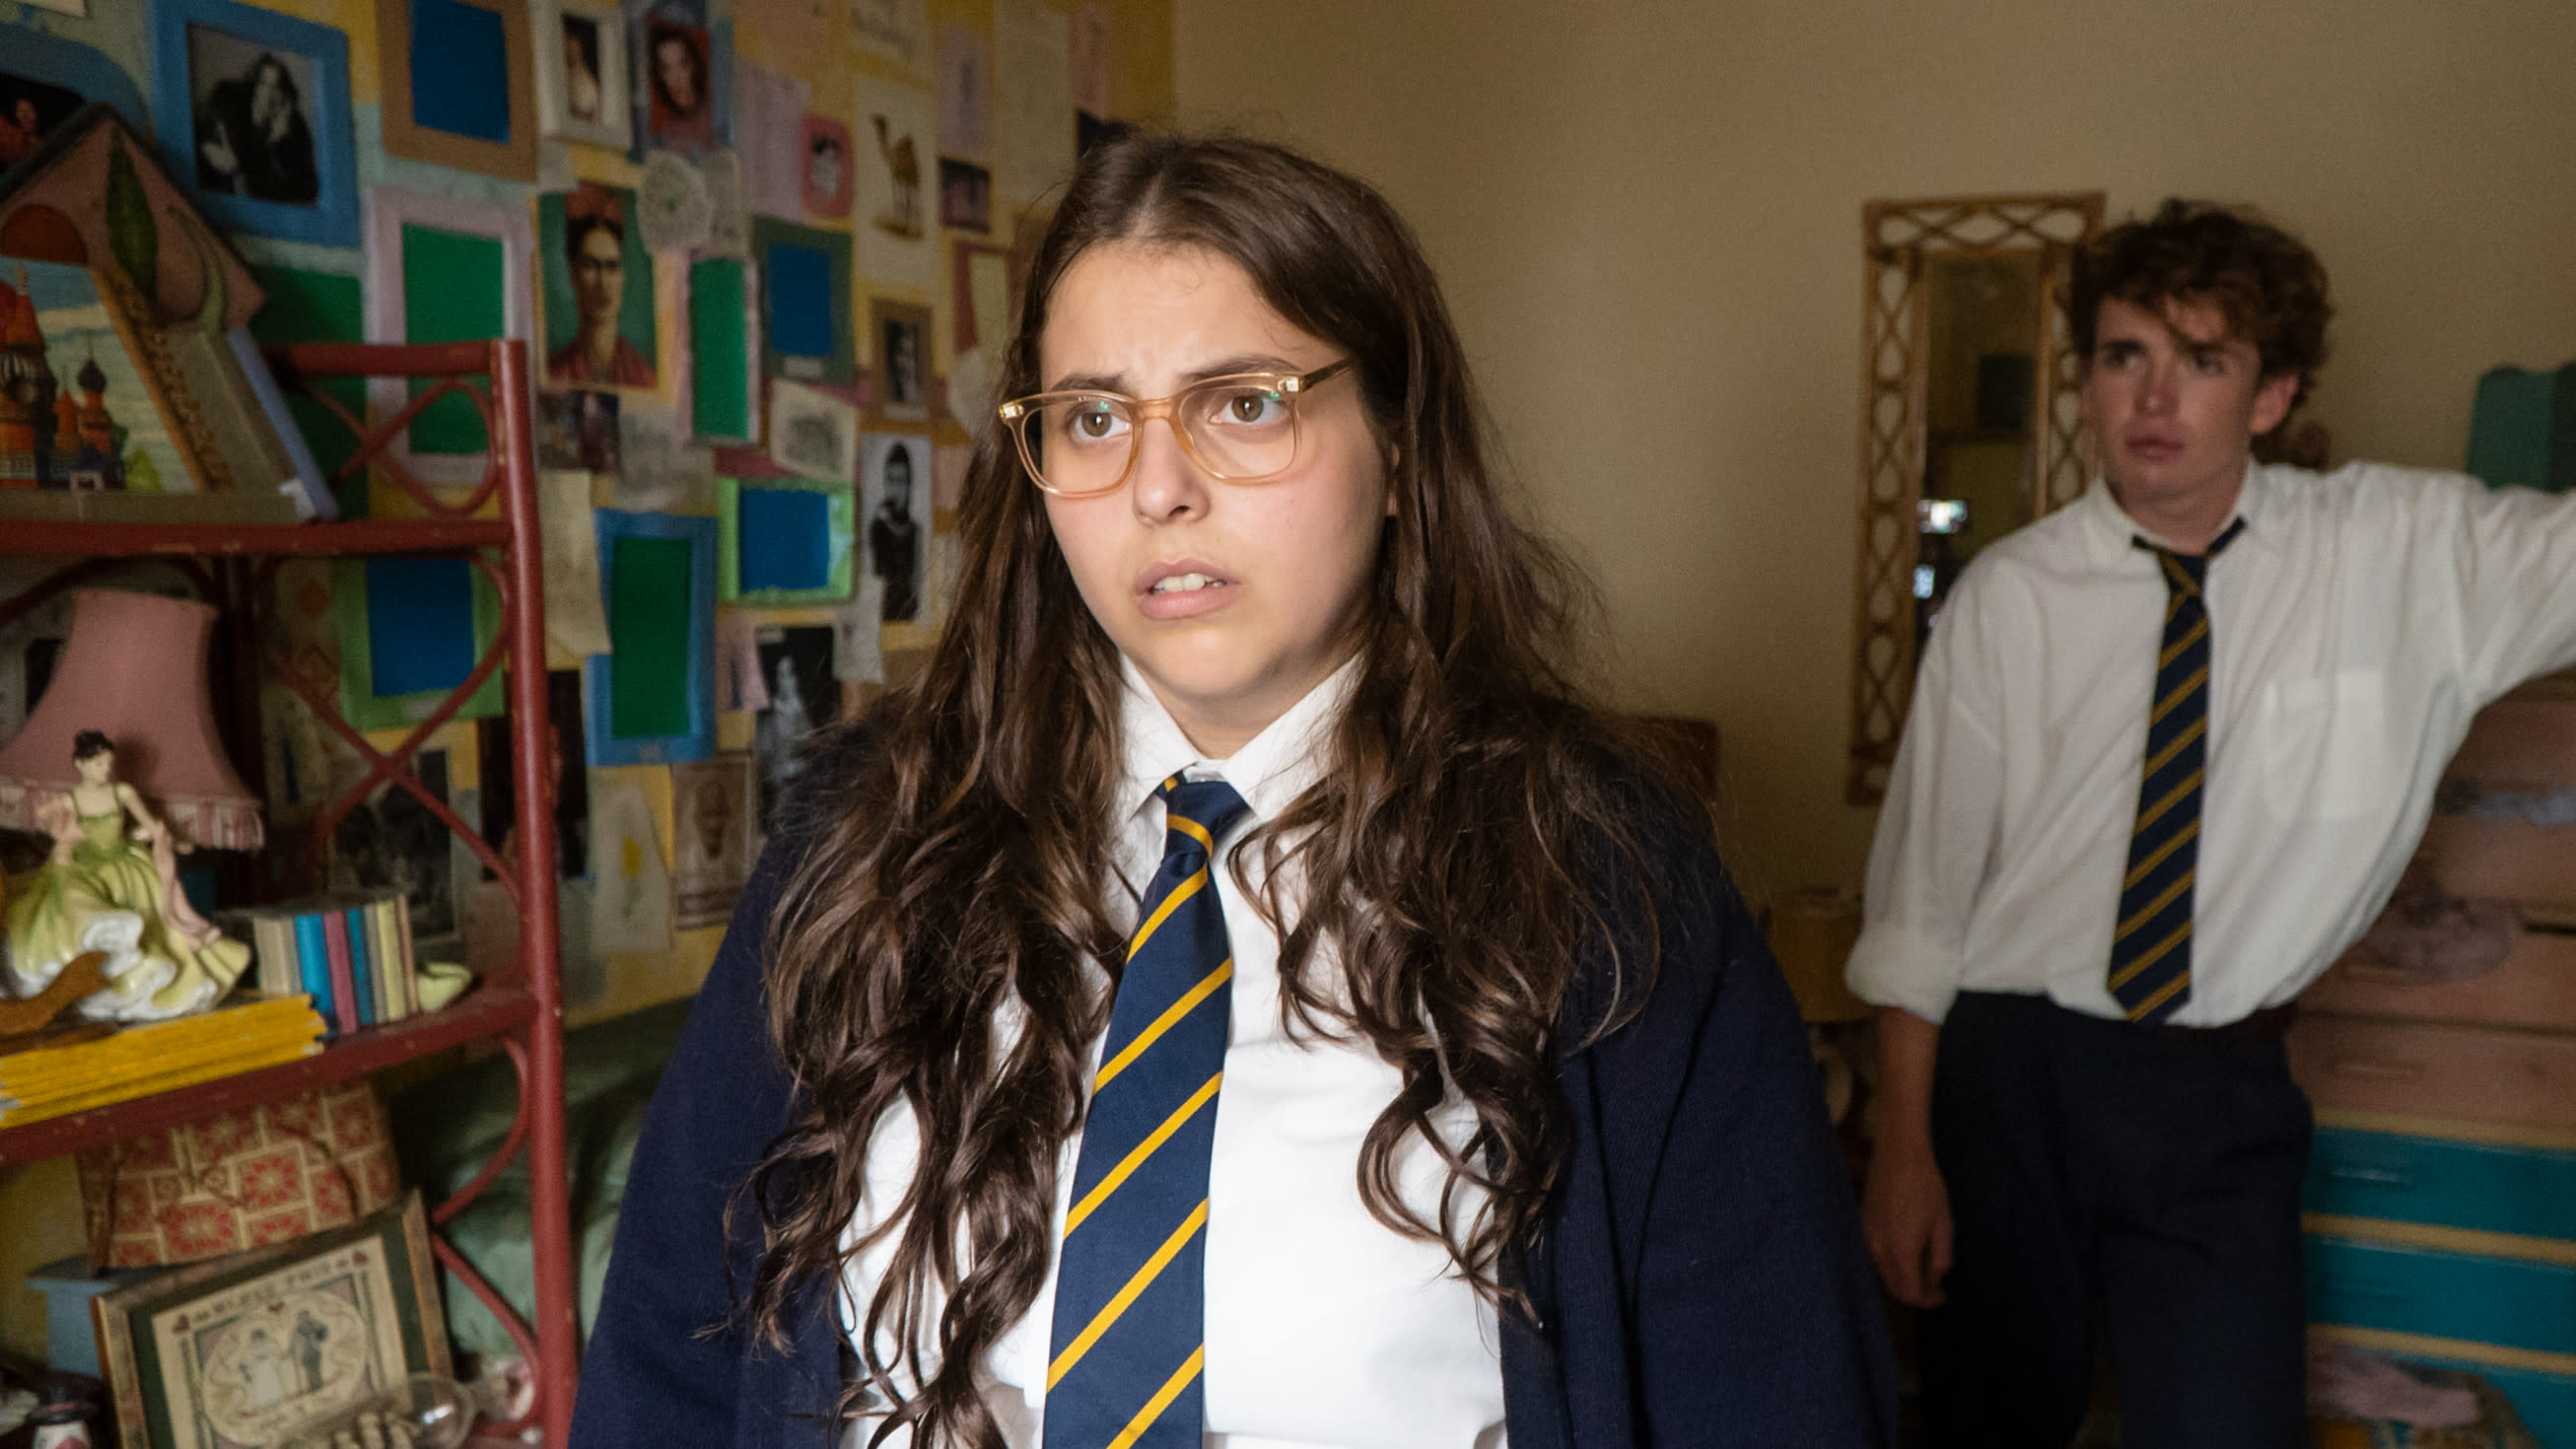 Beanie Feldstein as budding writer Johanna Morrigan in 'How To Build a Girl'. (Credit: Lionsgate)